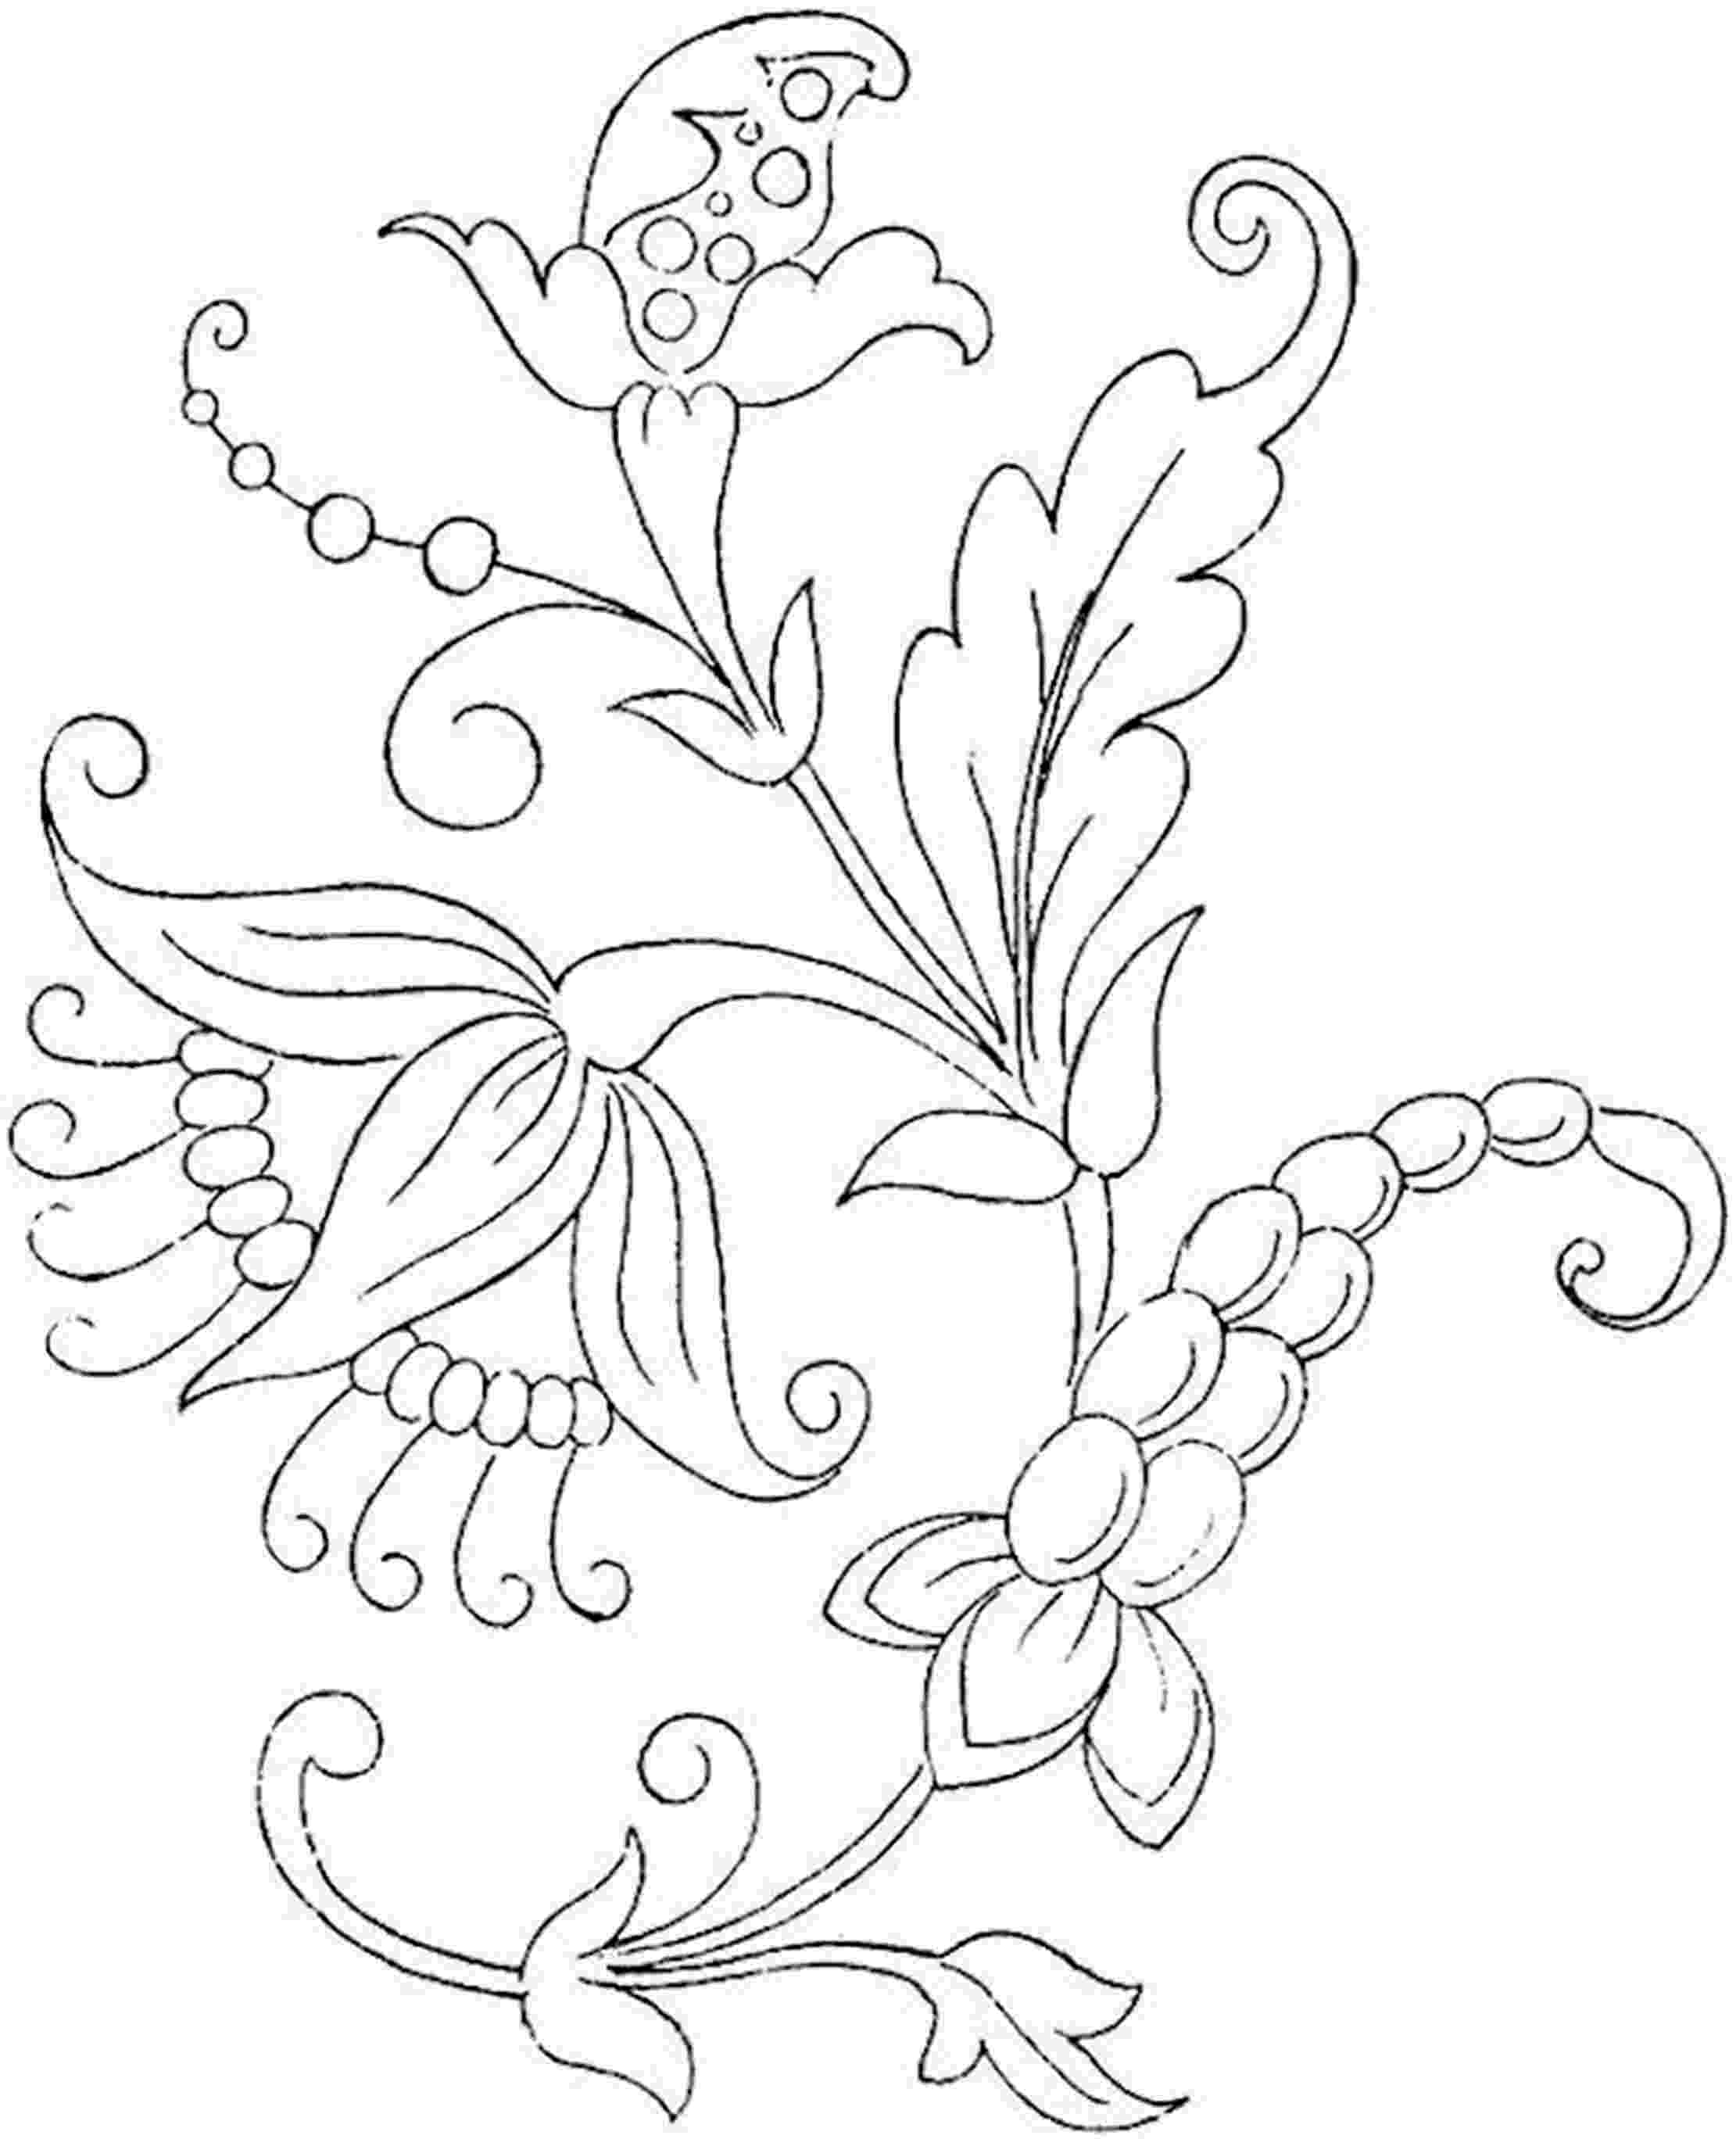 free flower pictures to print and color free printable flower coloring pages for kids  best free pictures to flower and print color